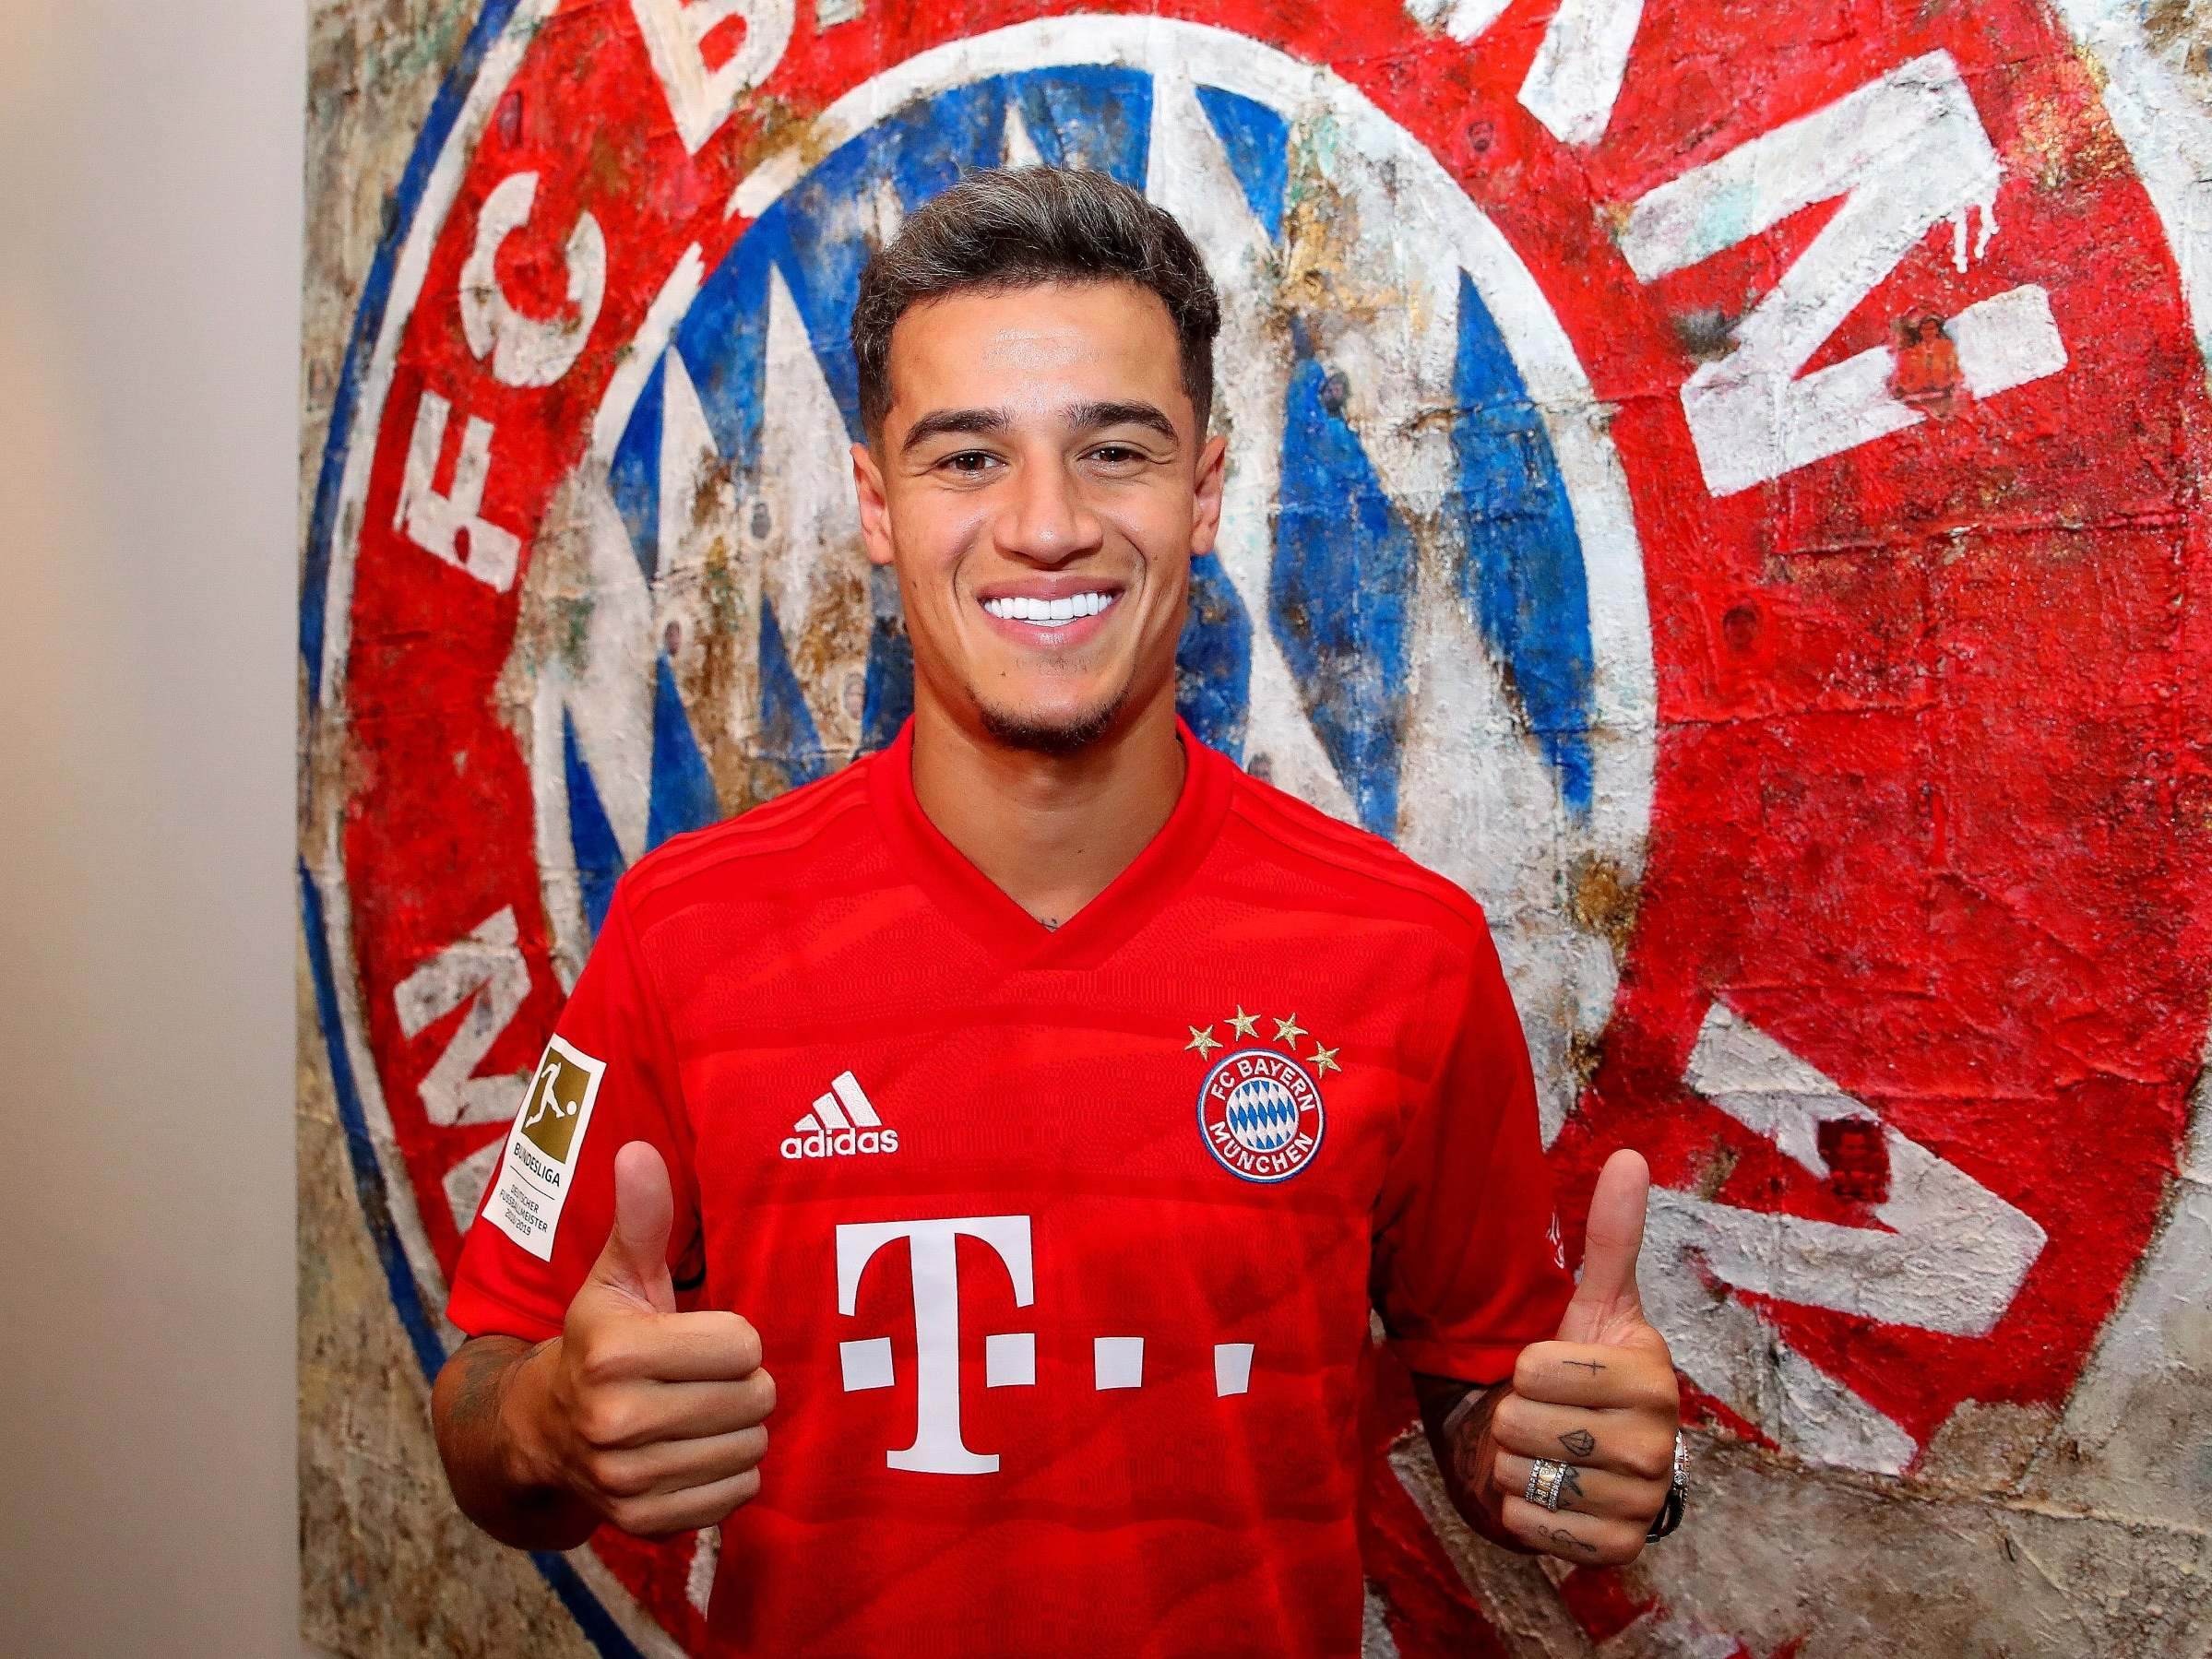 Barcelona transfer news: Philippe Coutinho reveals what he will bring to Bayern Munich after signing on loan